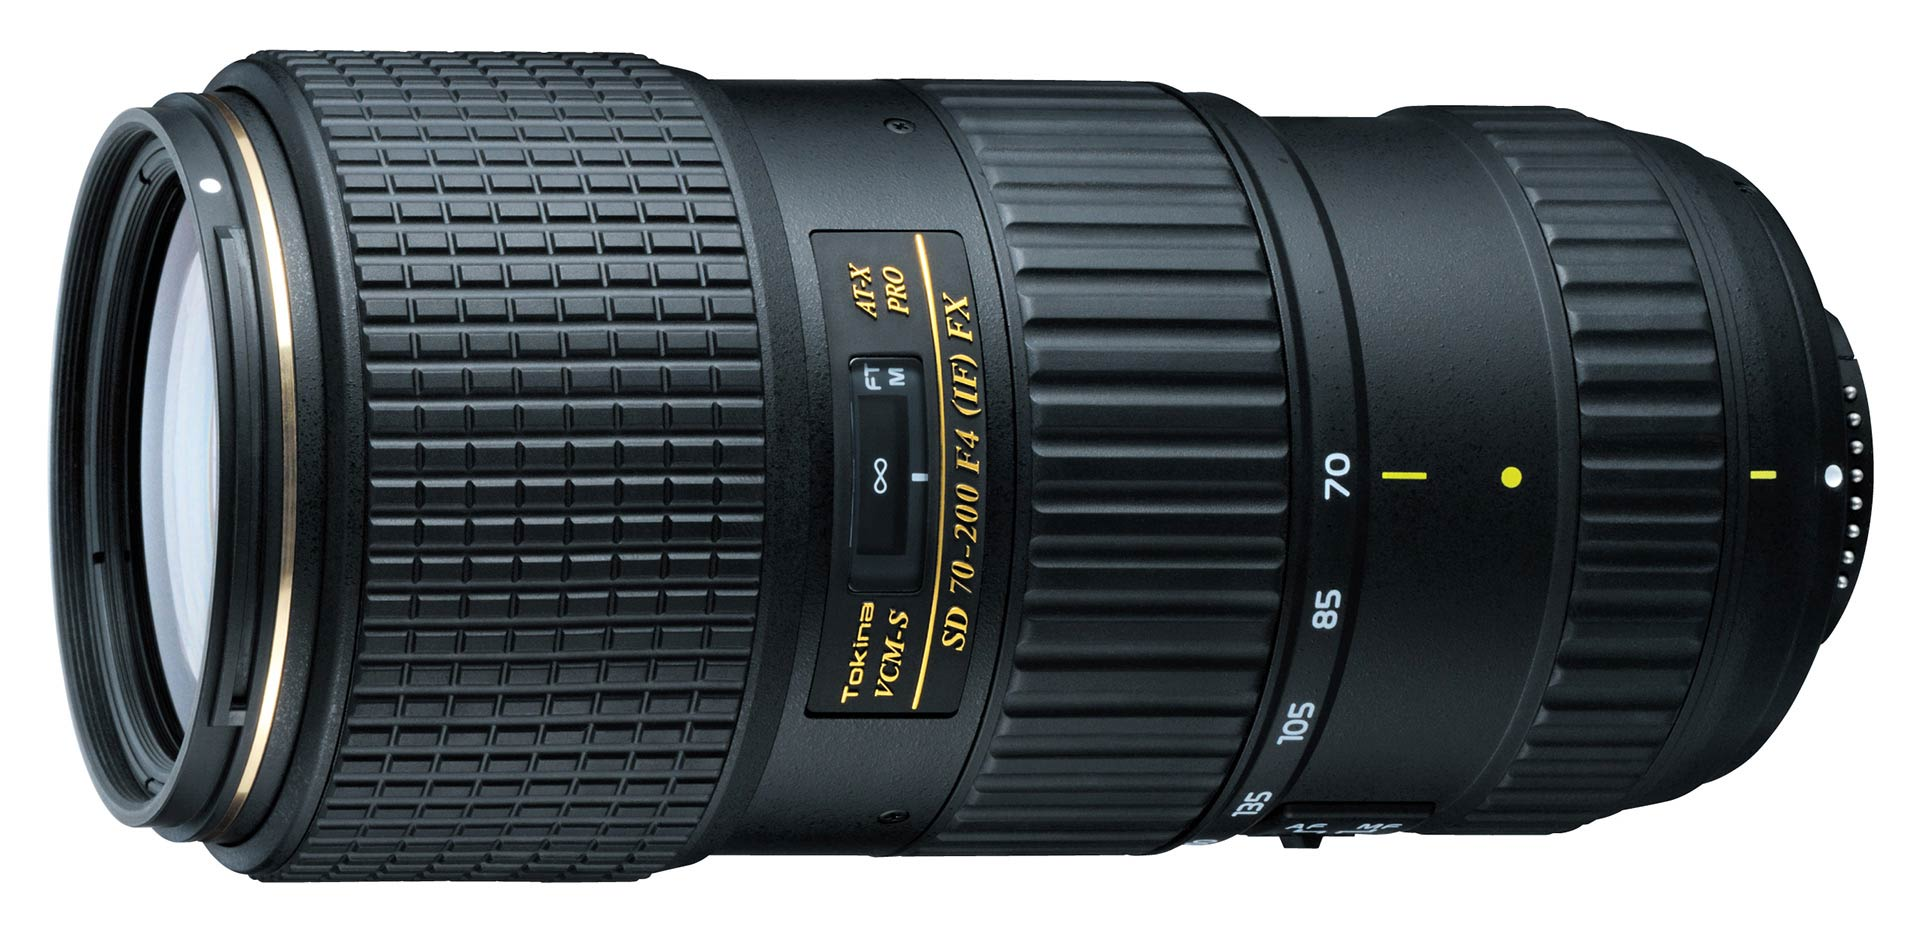 Tokina Announces Stabilized AT-X Pro 70-200mm f/4 VCM-S Lens